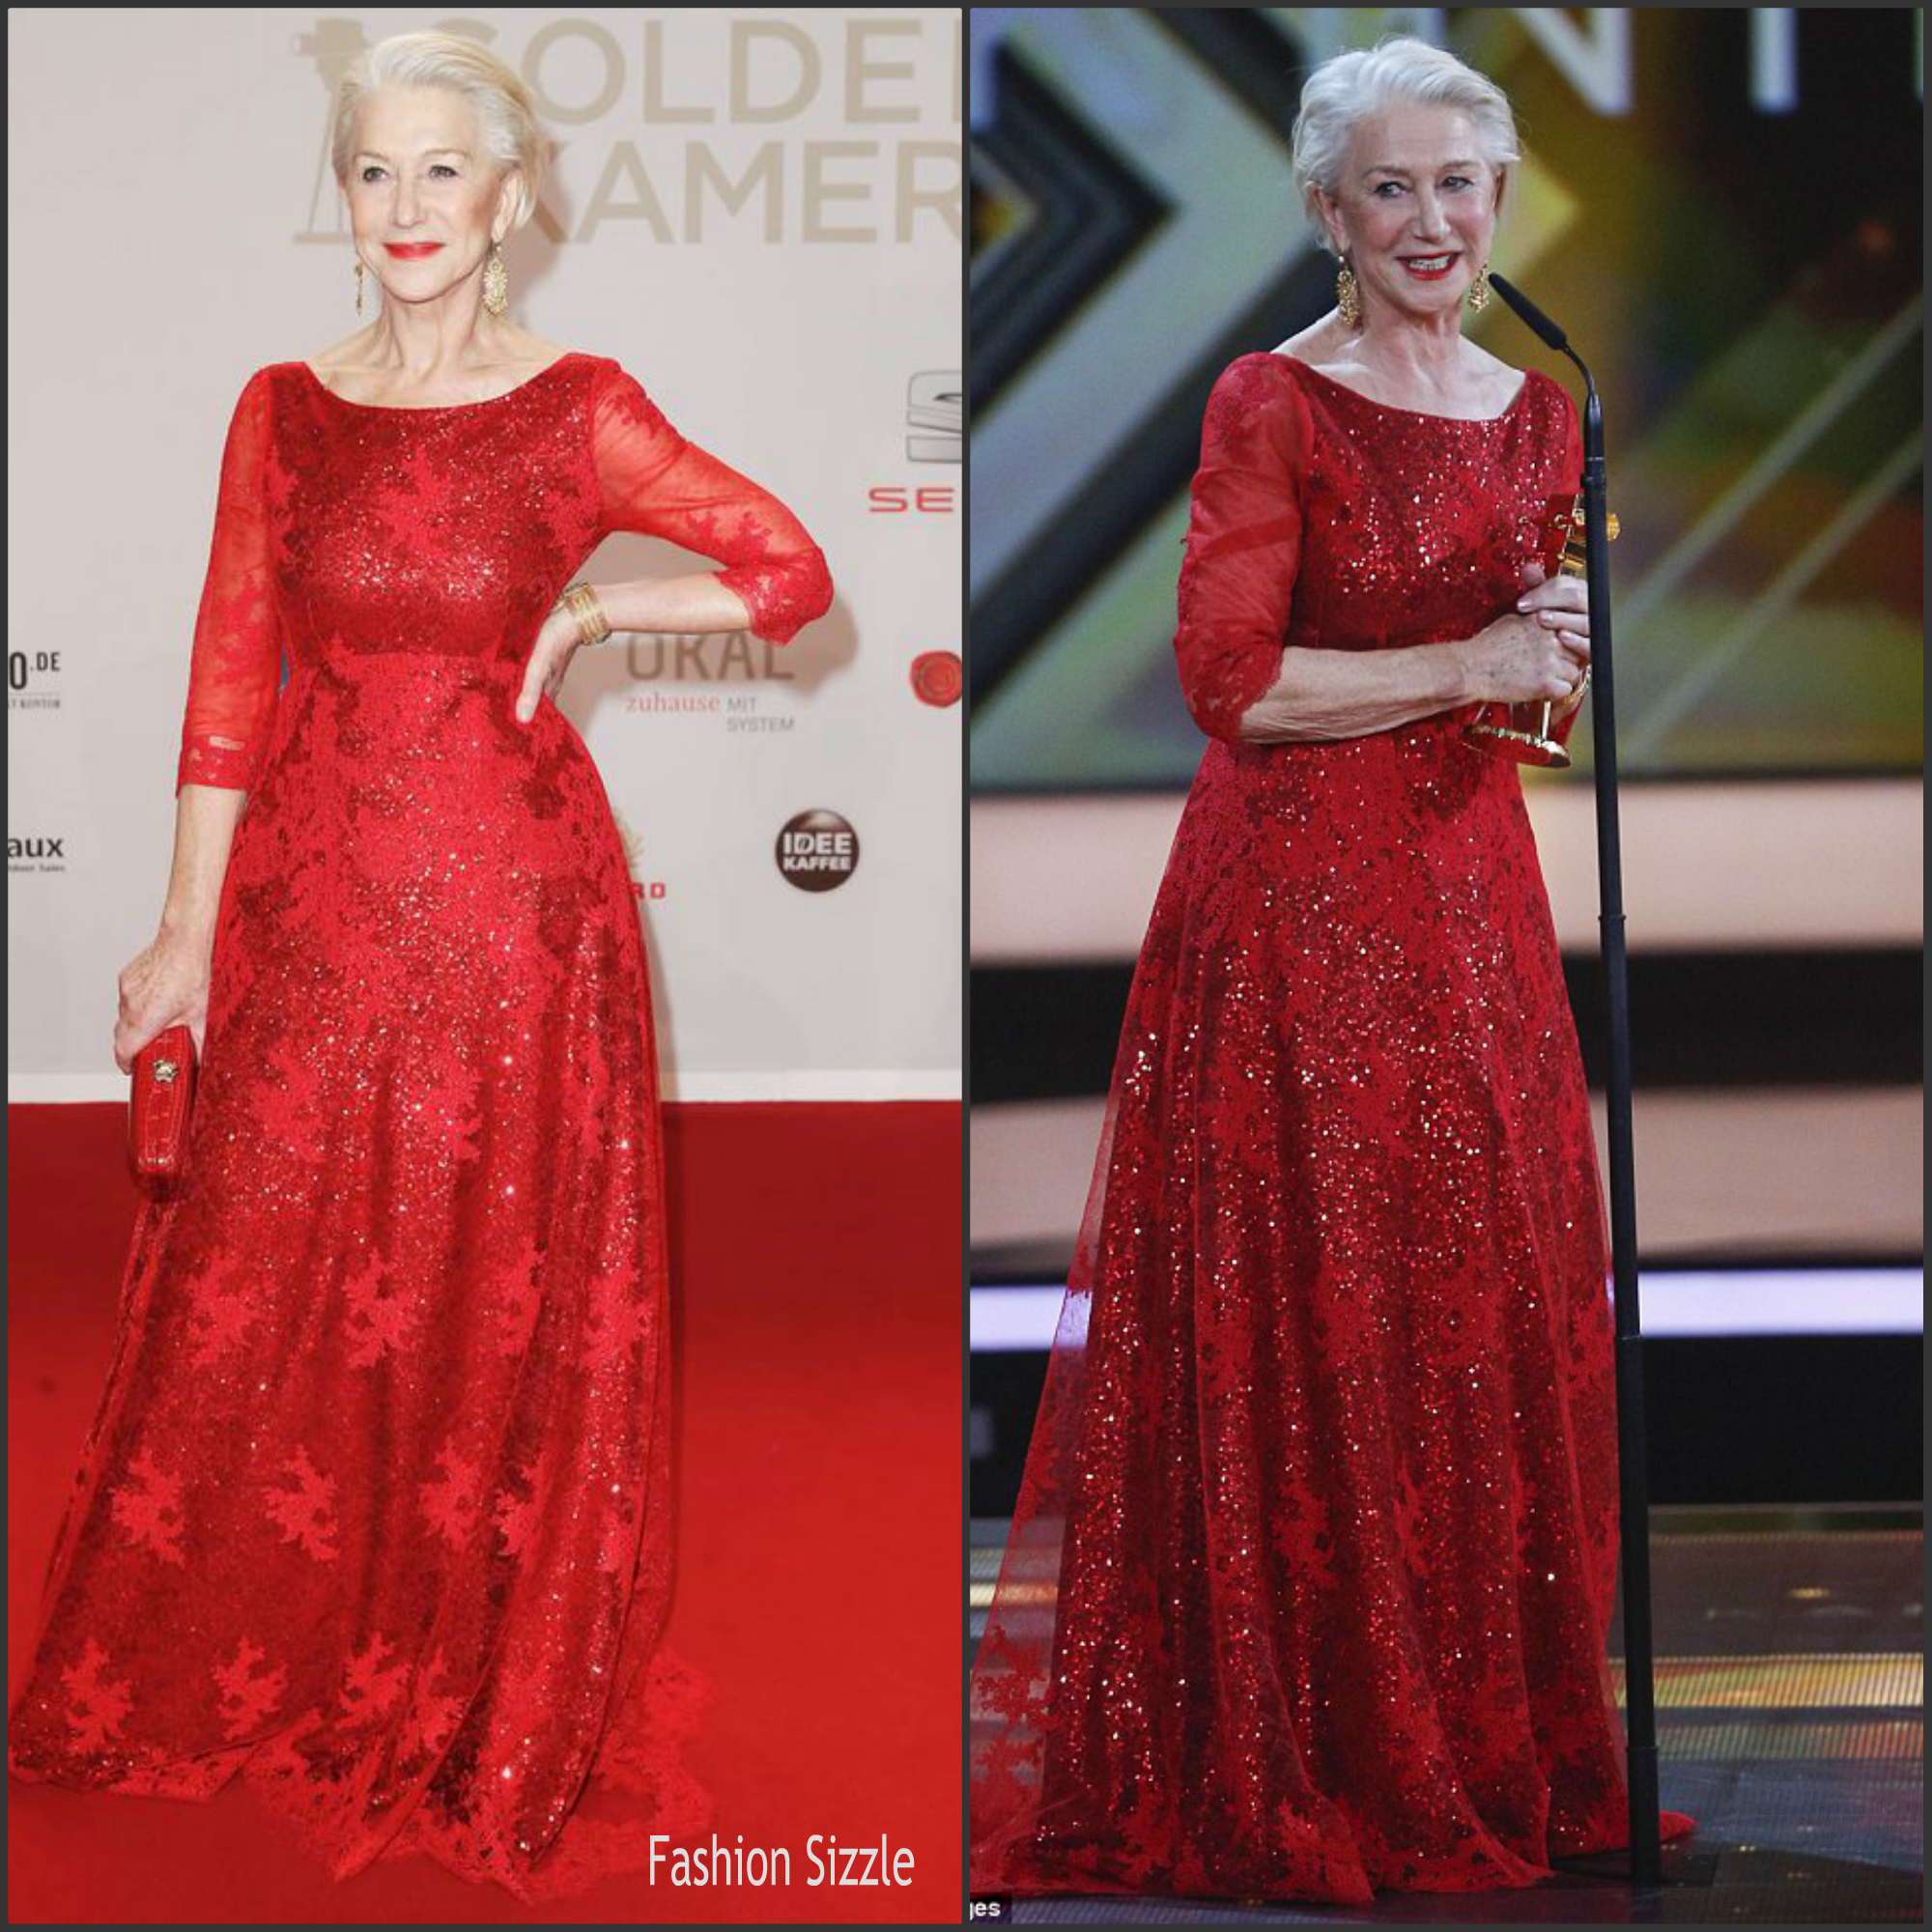 helen-mirren-in-jacques-azagury-goldene-kamera-awards